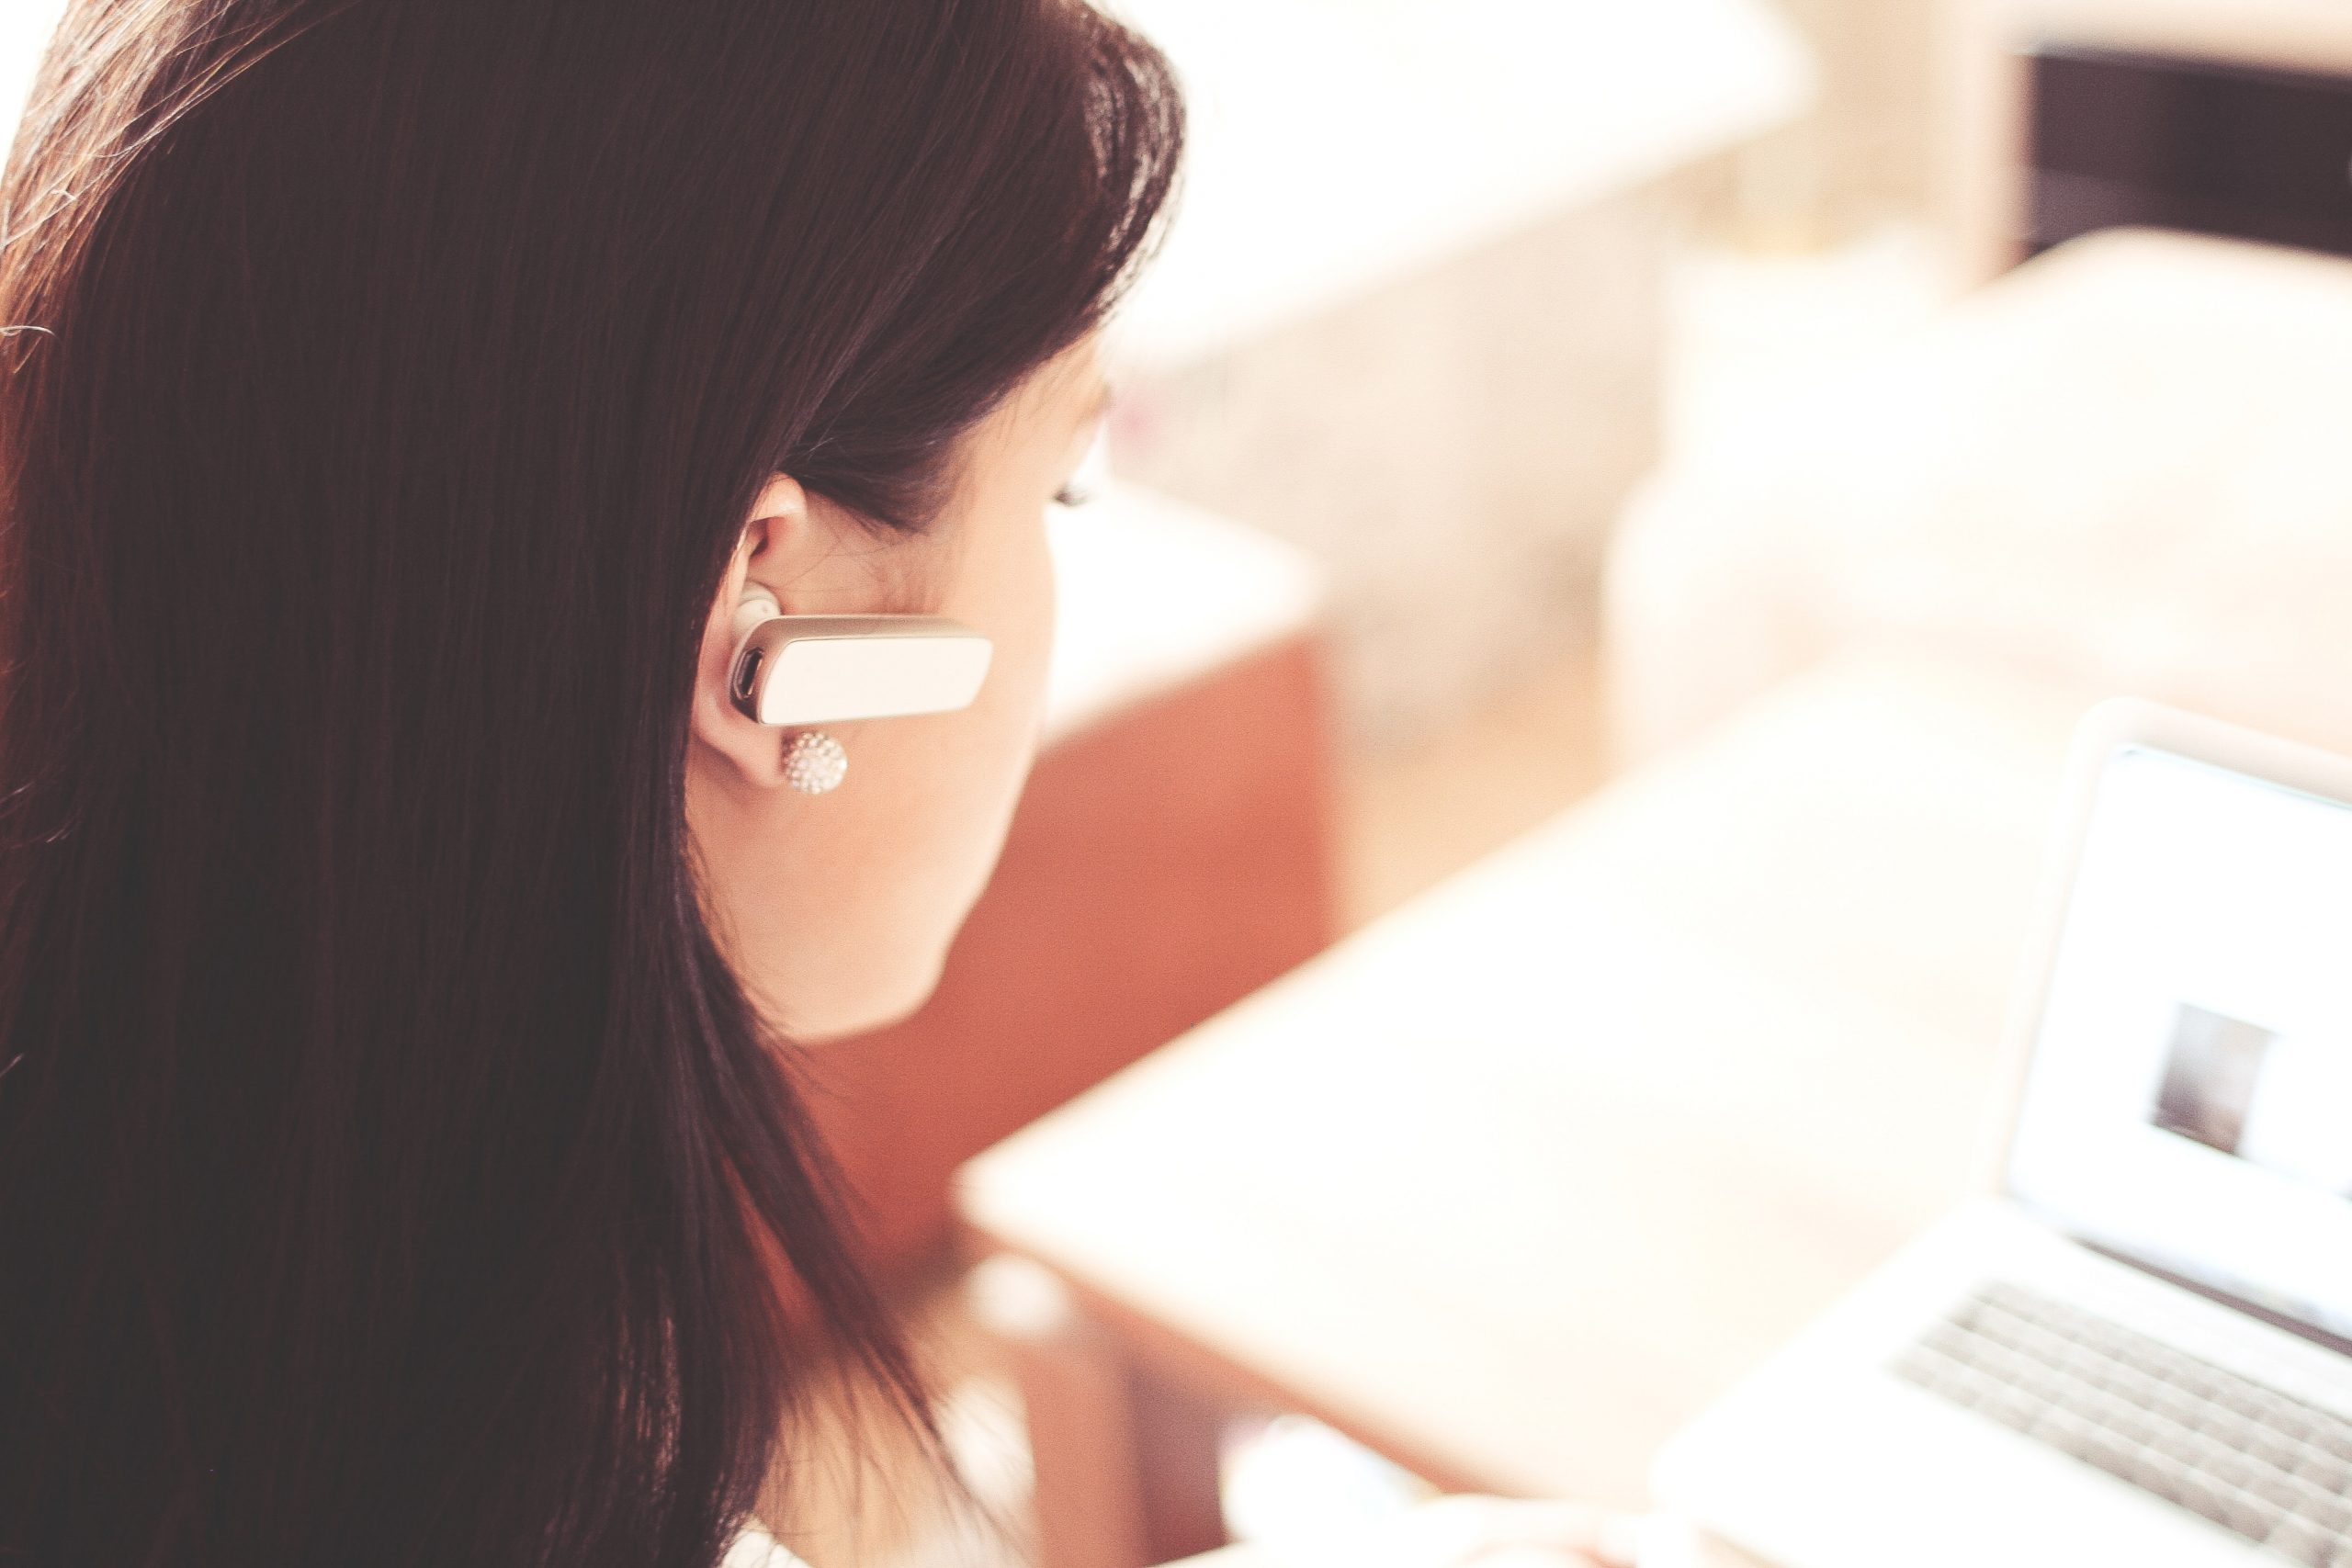 Customers want more text-based customer support options from brands